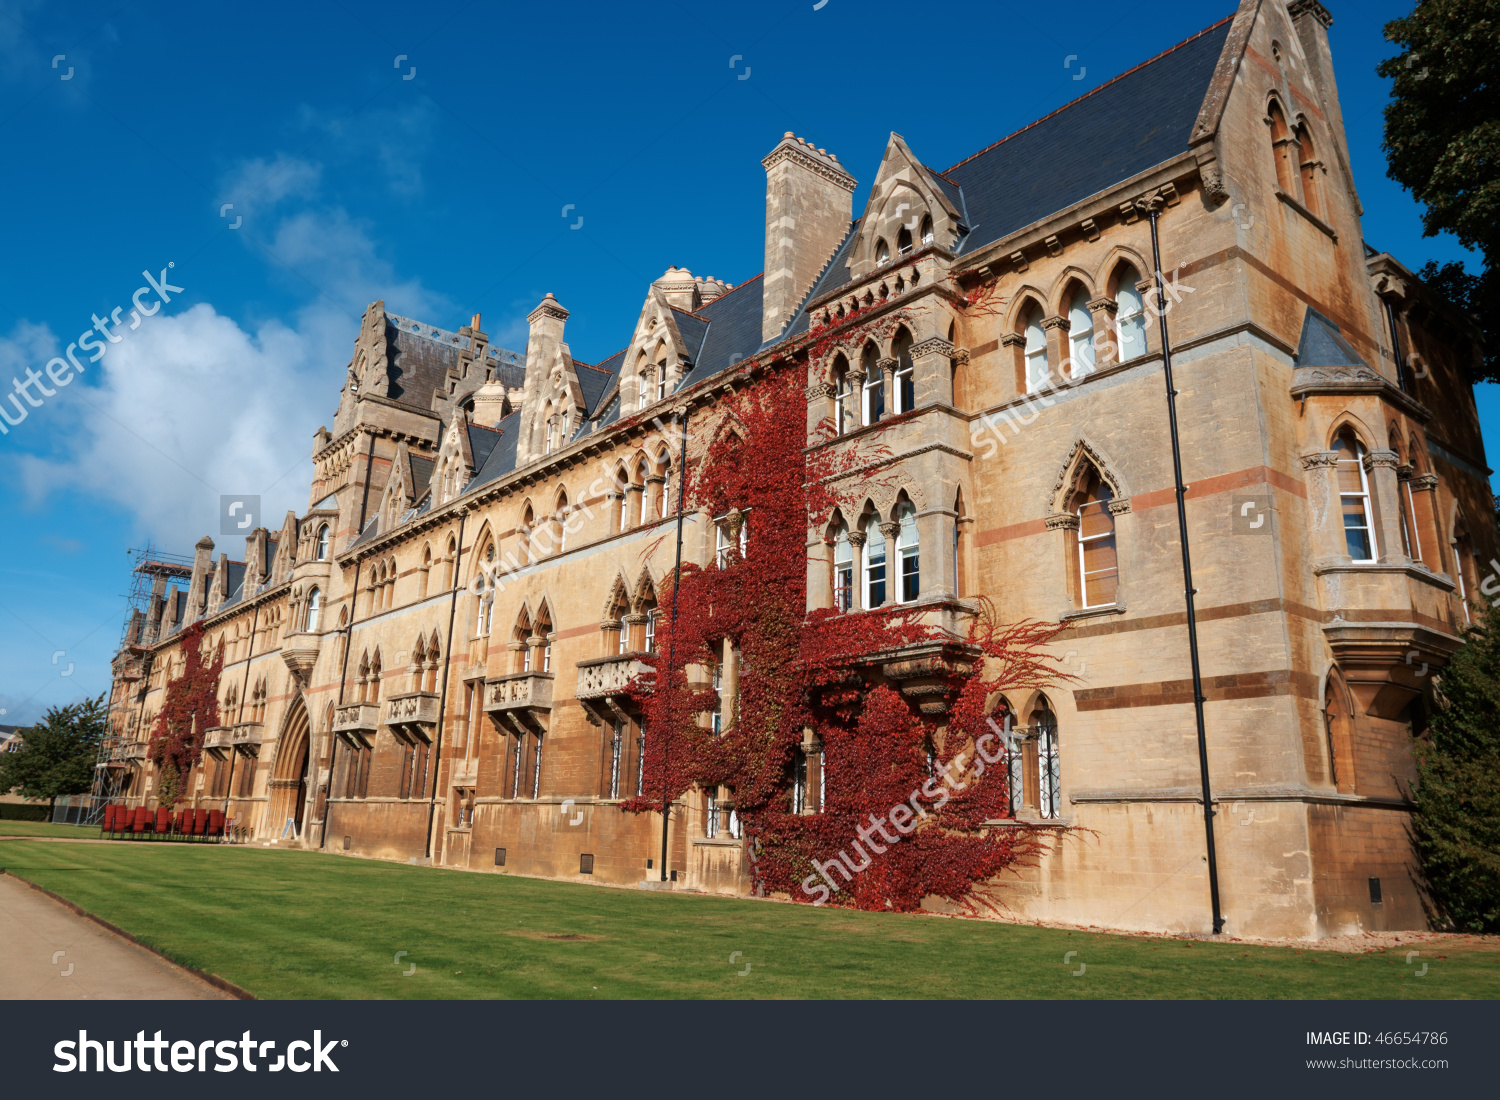 Christ Church College Oxford University Uk Stock Photo 46654786.